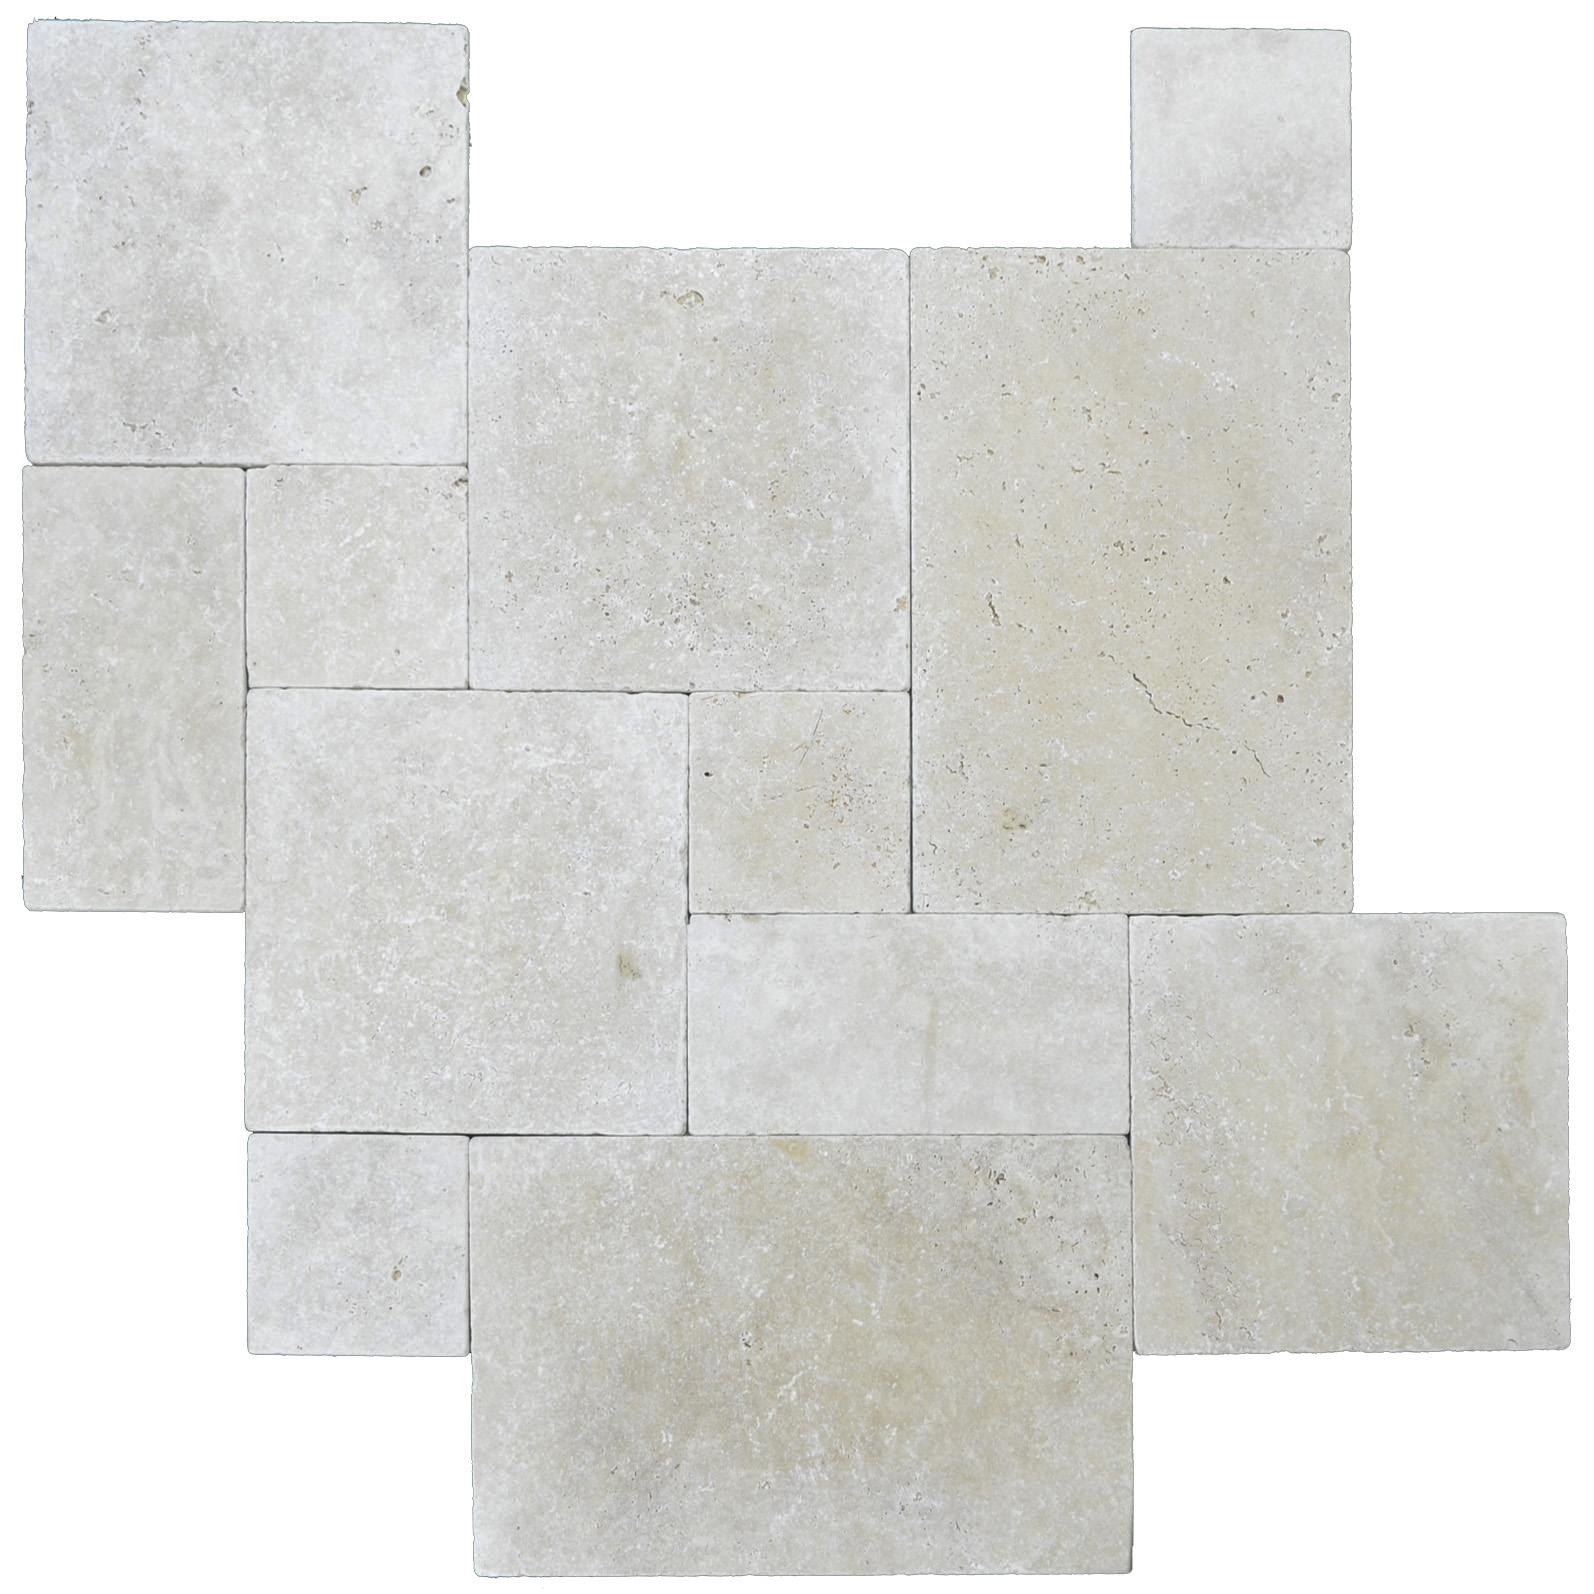 Ivory Tumbled French Pattern Travertine Pavers